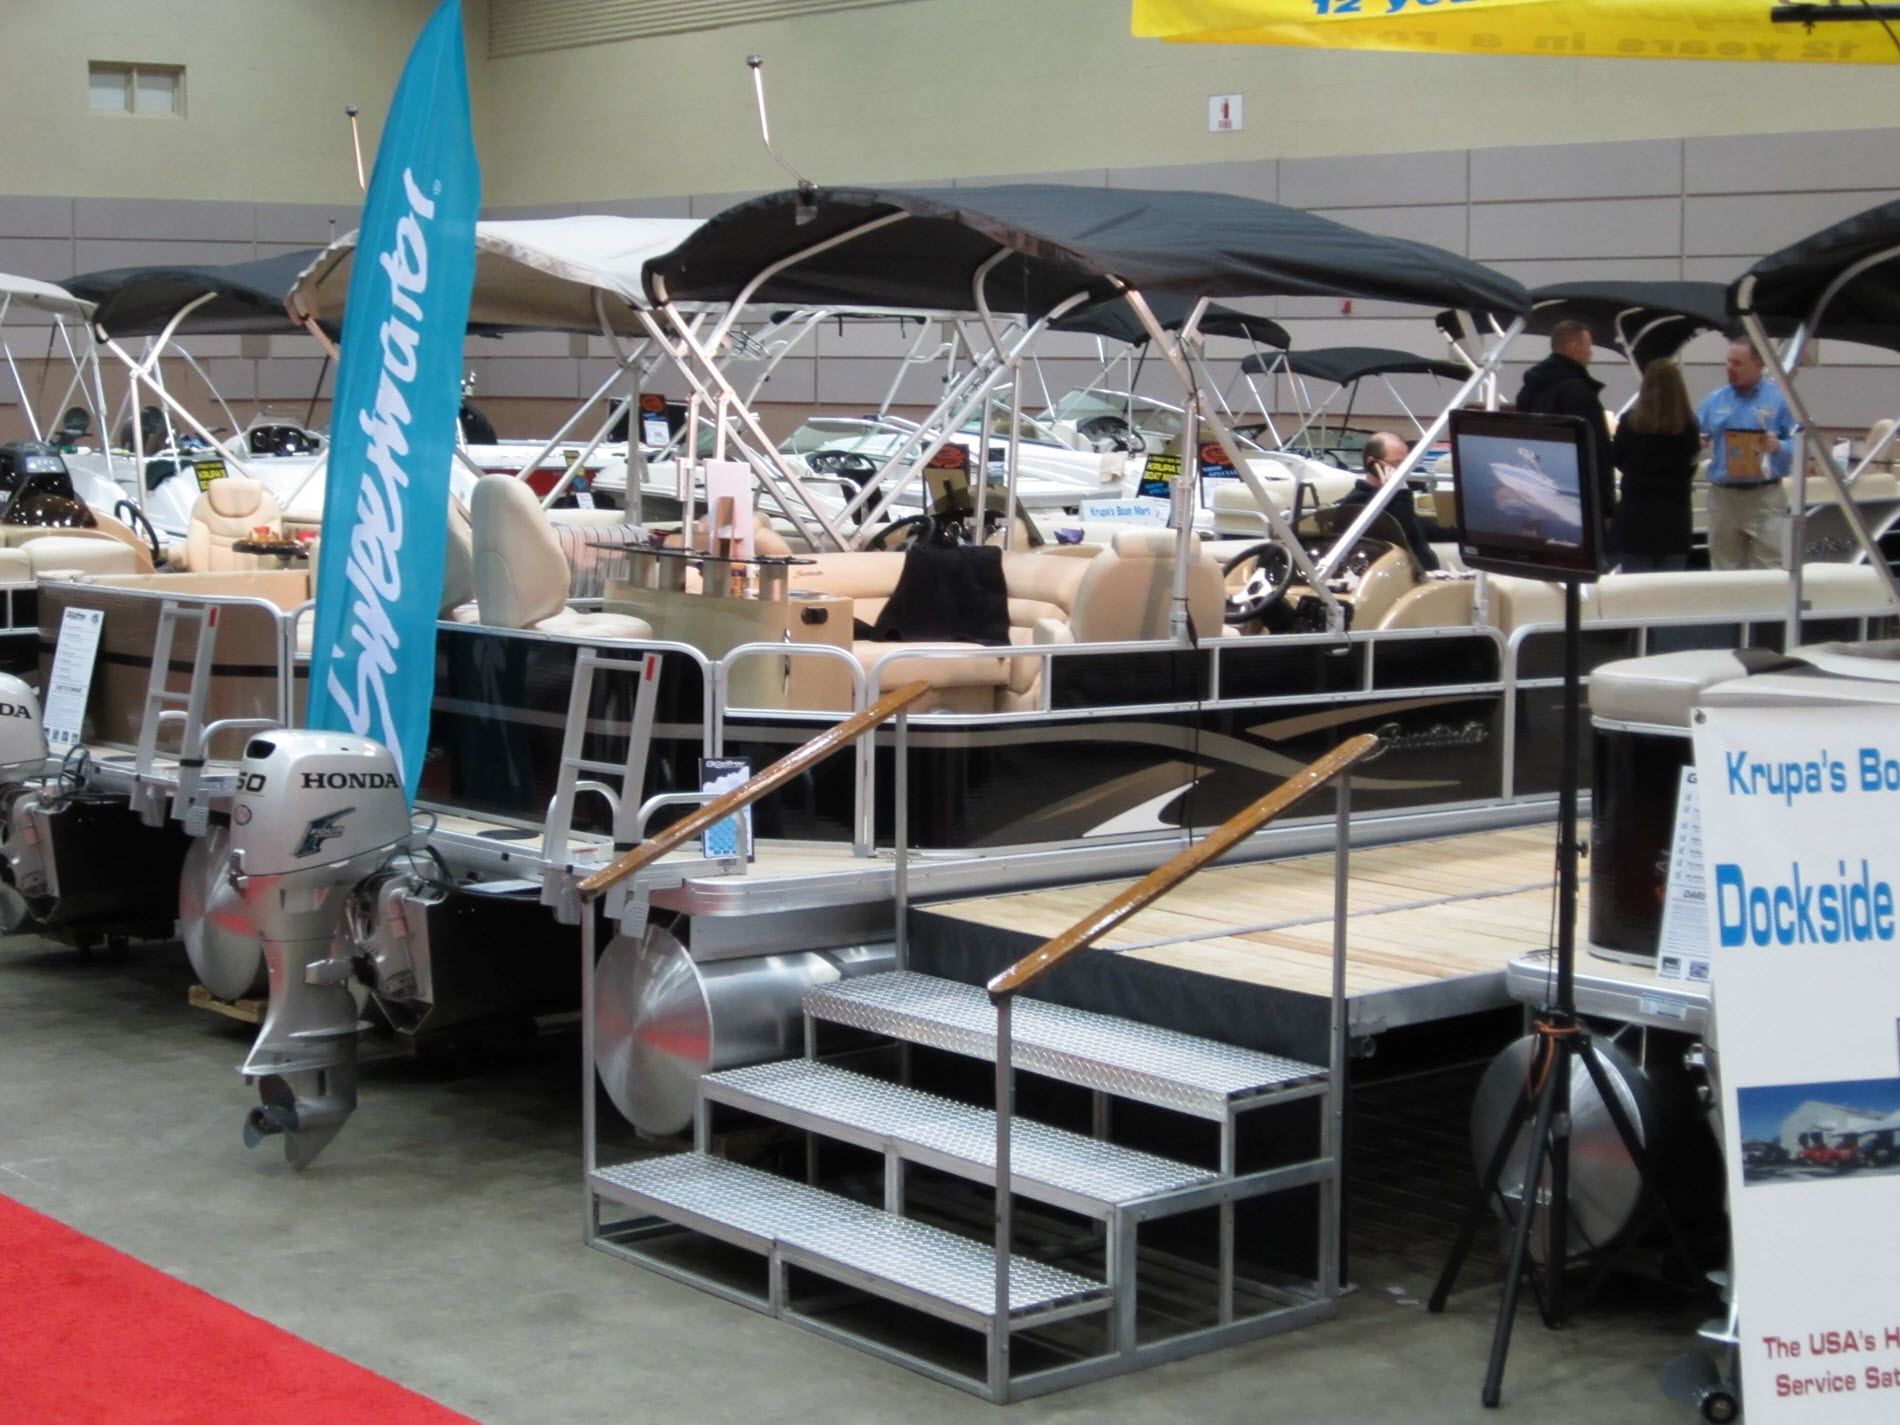 Tickets For The Lansing Boat Show At The Lansing Center Lansing Boat Show H20 18